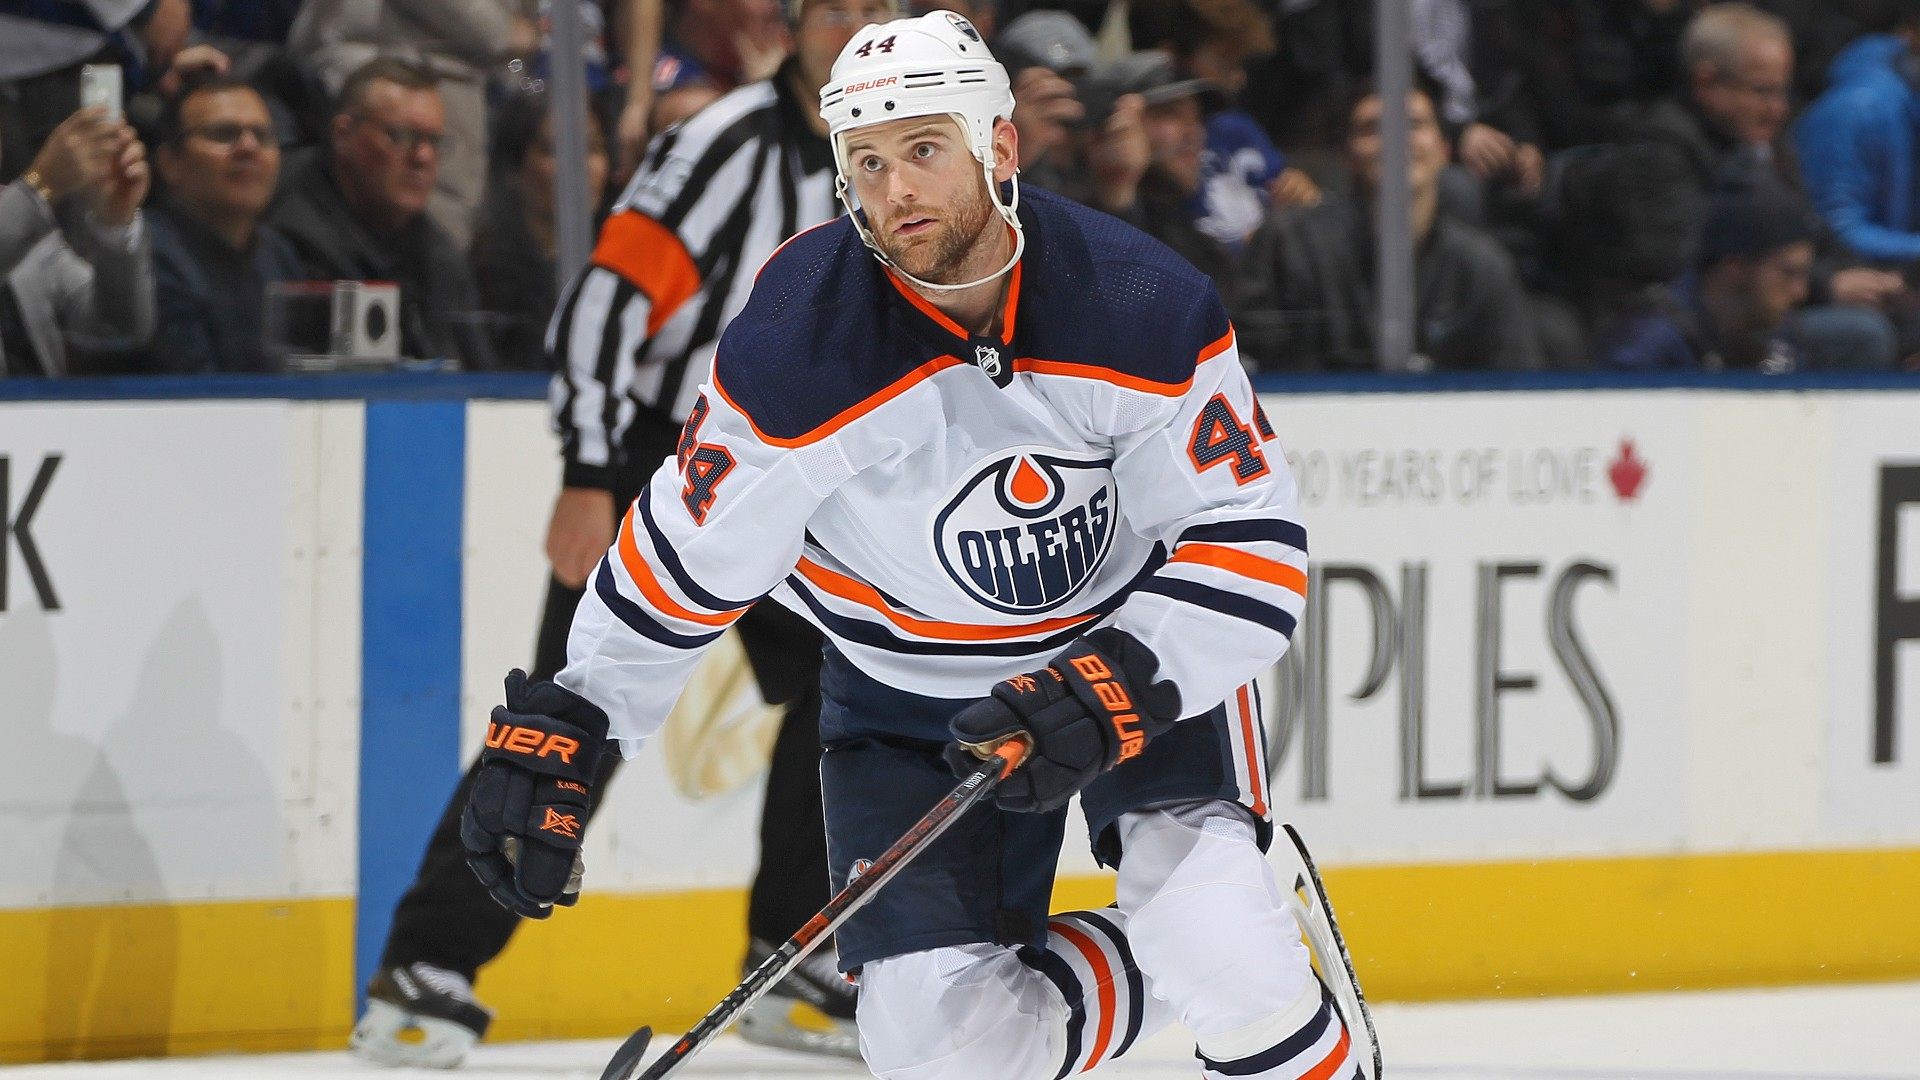 Oilers' Zack Kassian kicks opponent in chest with skate during game